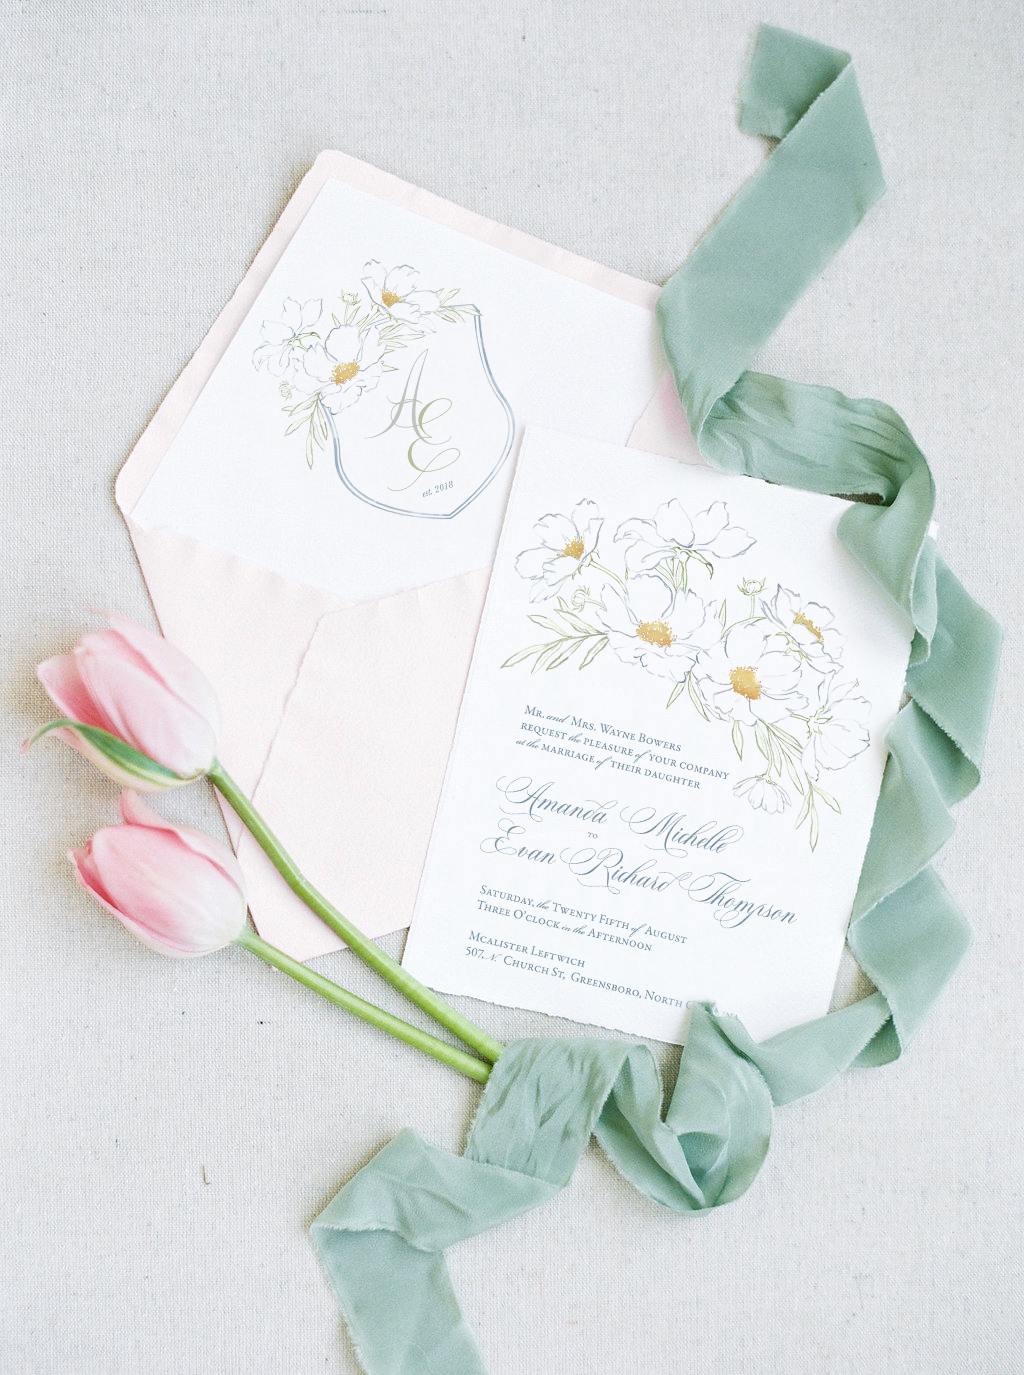 Fine-art-wedding-invitations-ethereal-wedding.jpg